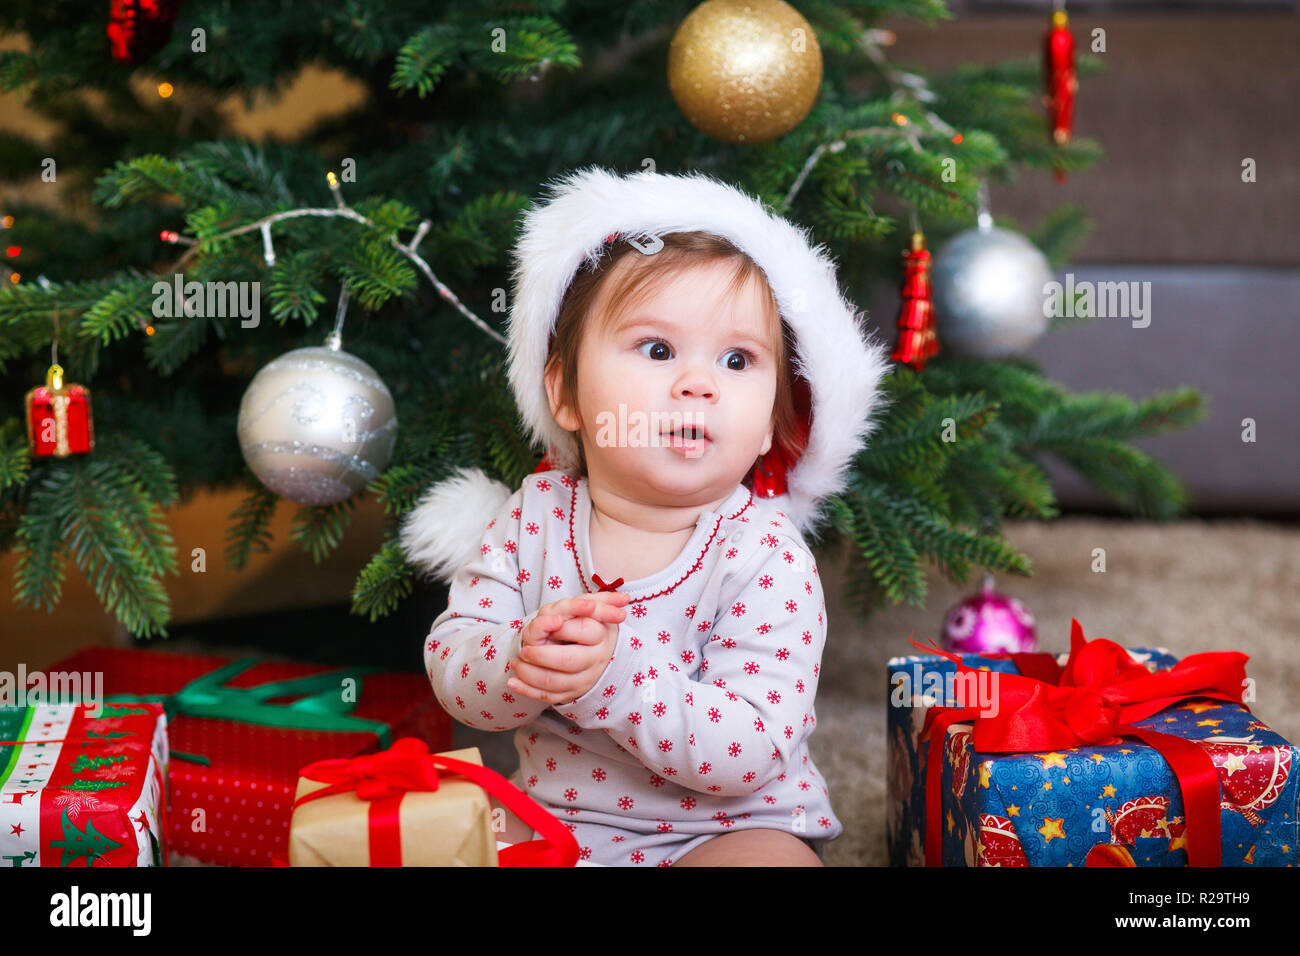 f839870669c Little smiling baby in hat of Santa Claus on a background of Christmas  garland